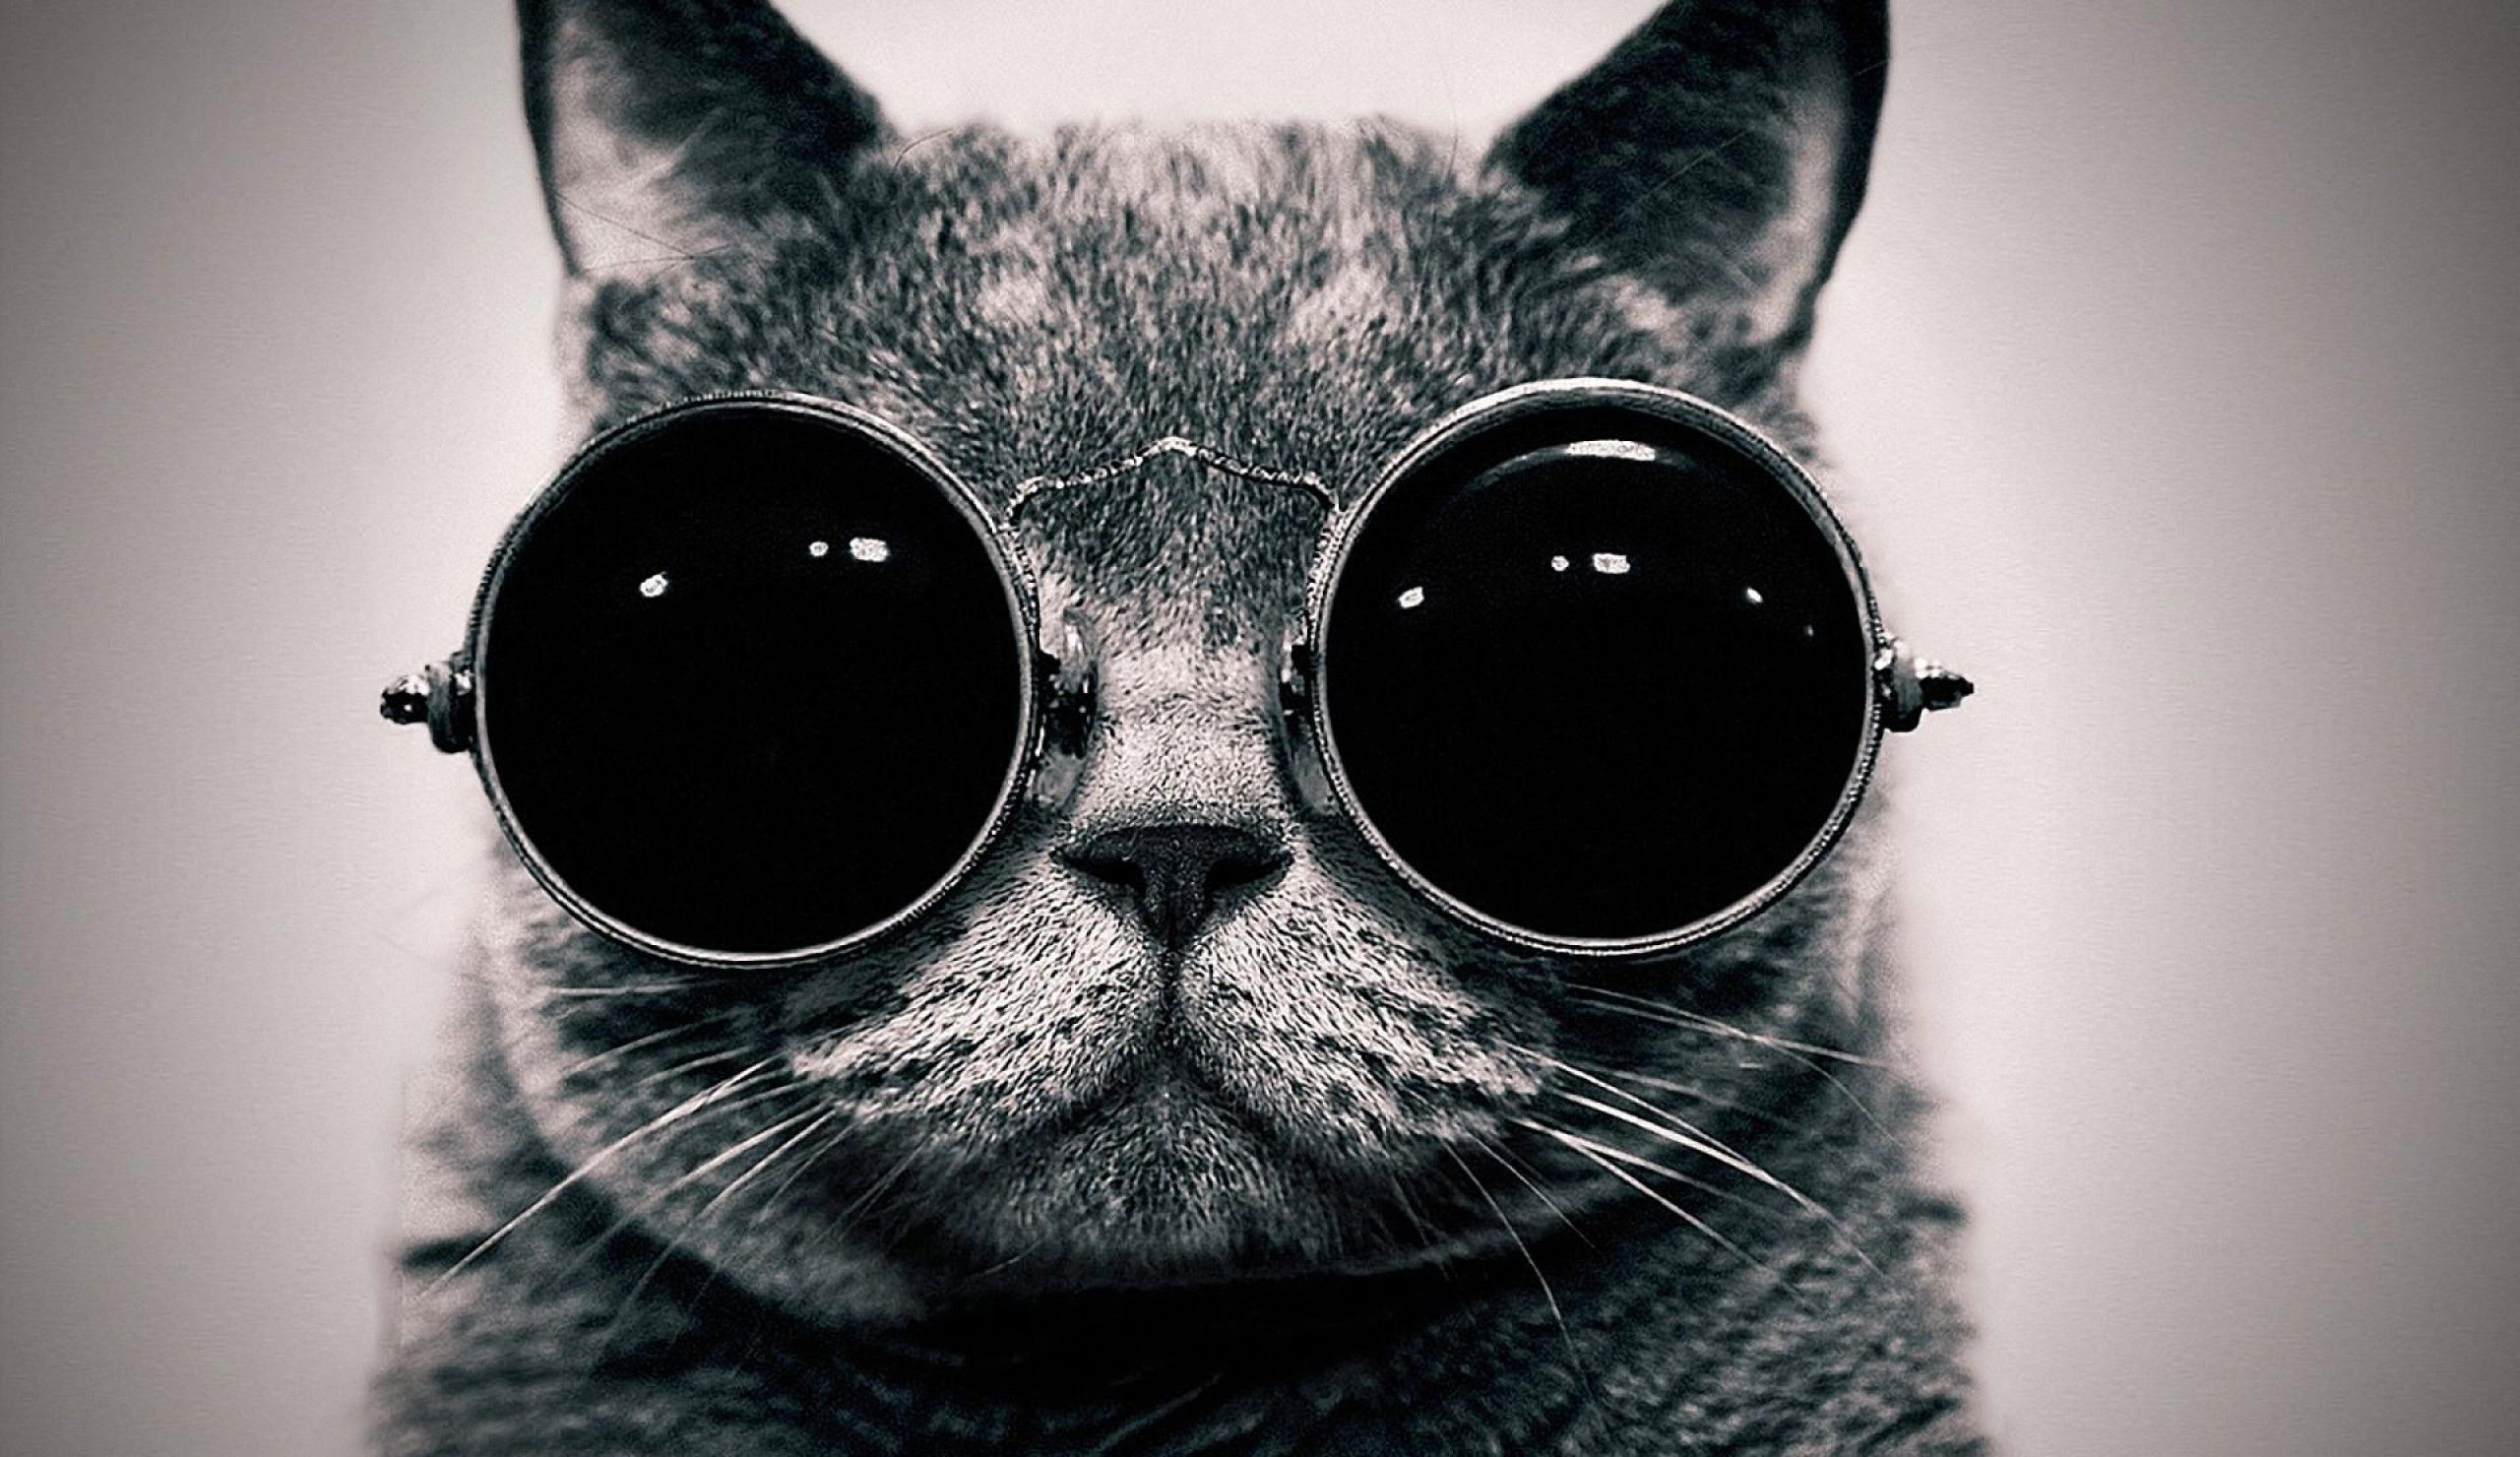 Cat With Glasses Wallpapers Top Free Cat With Glasses Backgrounds Wallpaperaccess